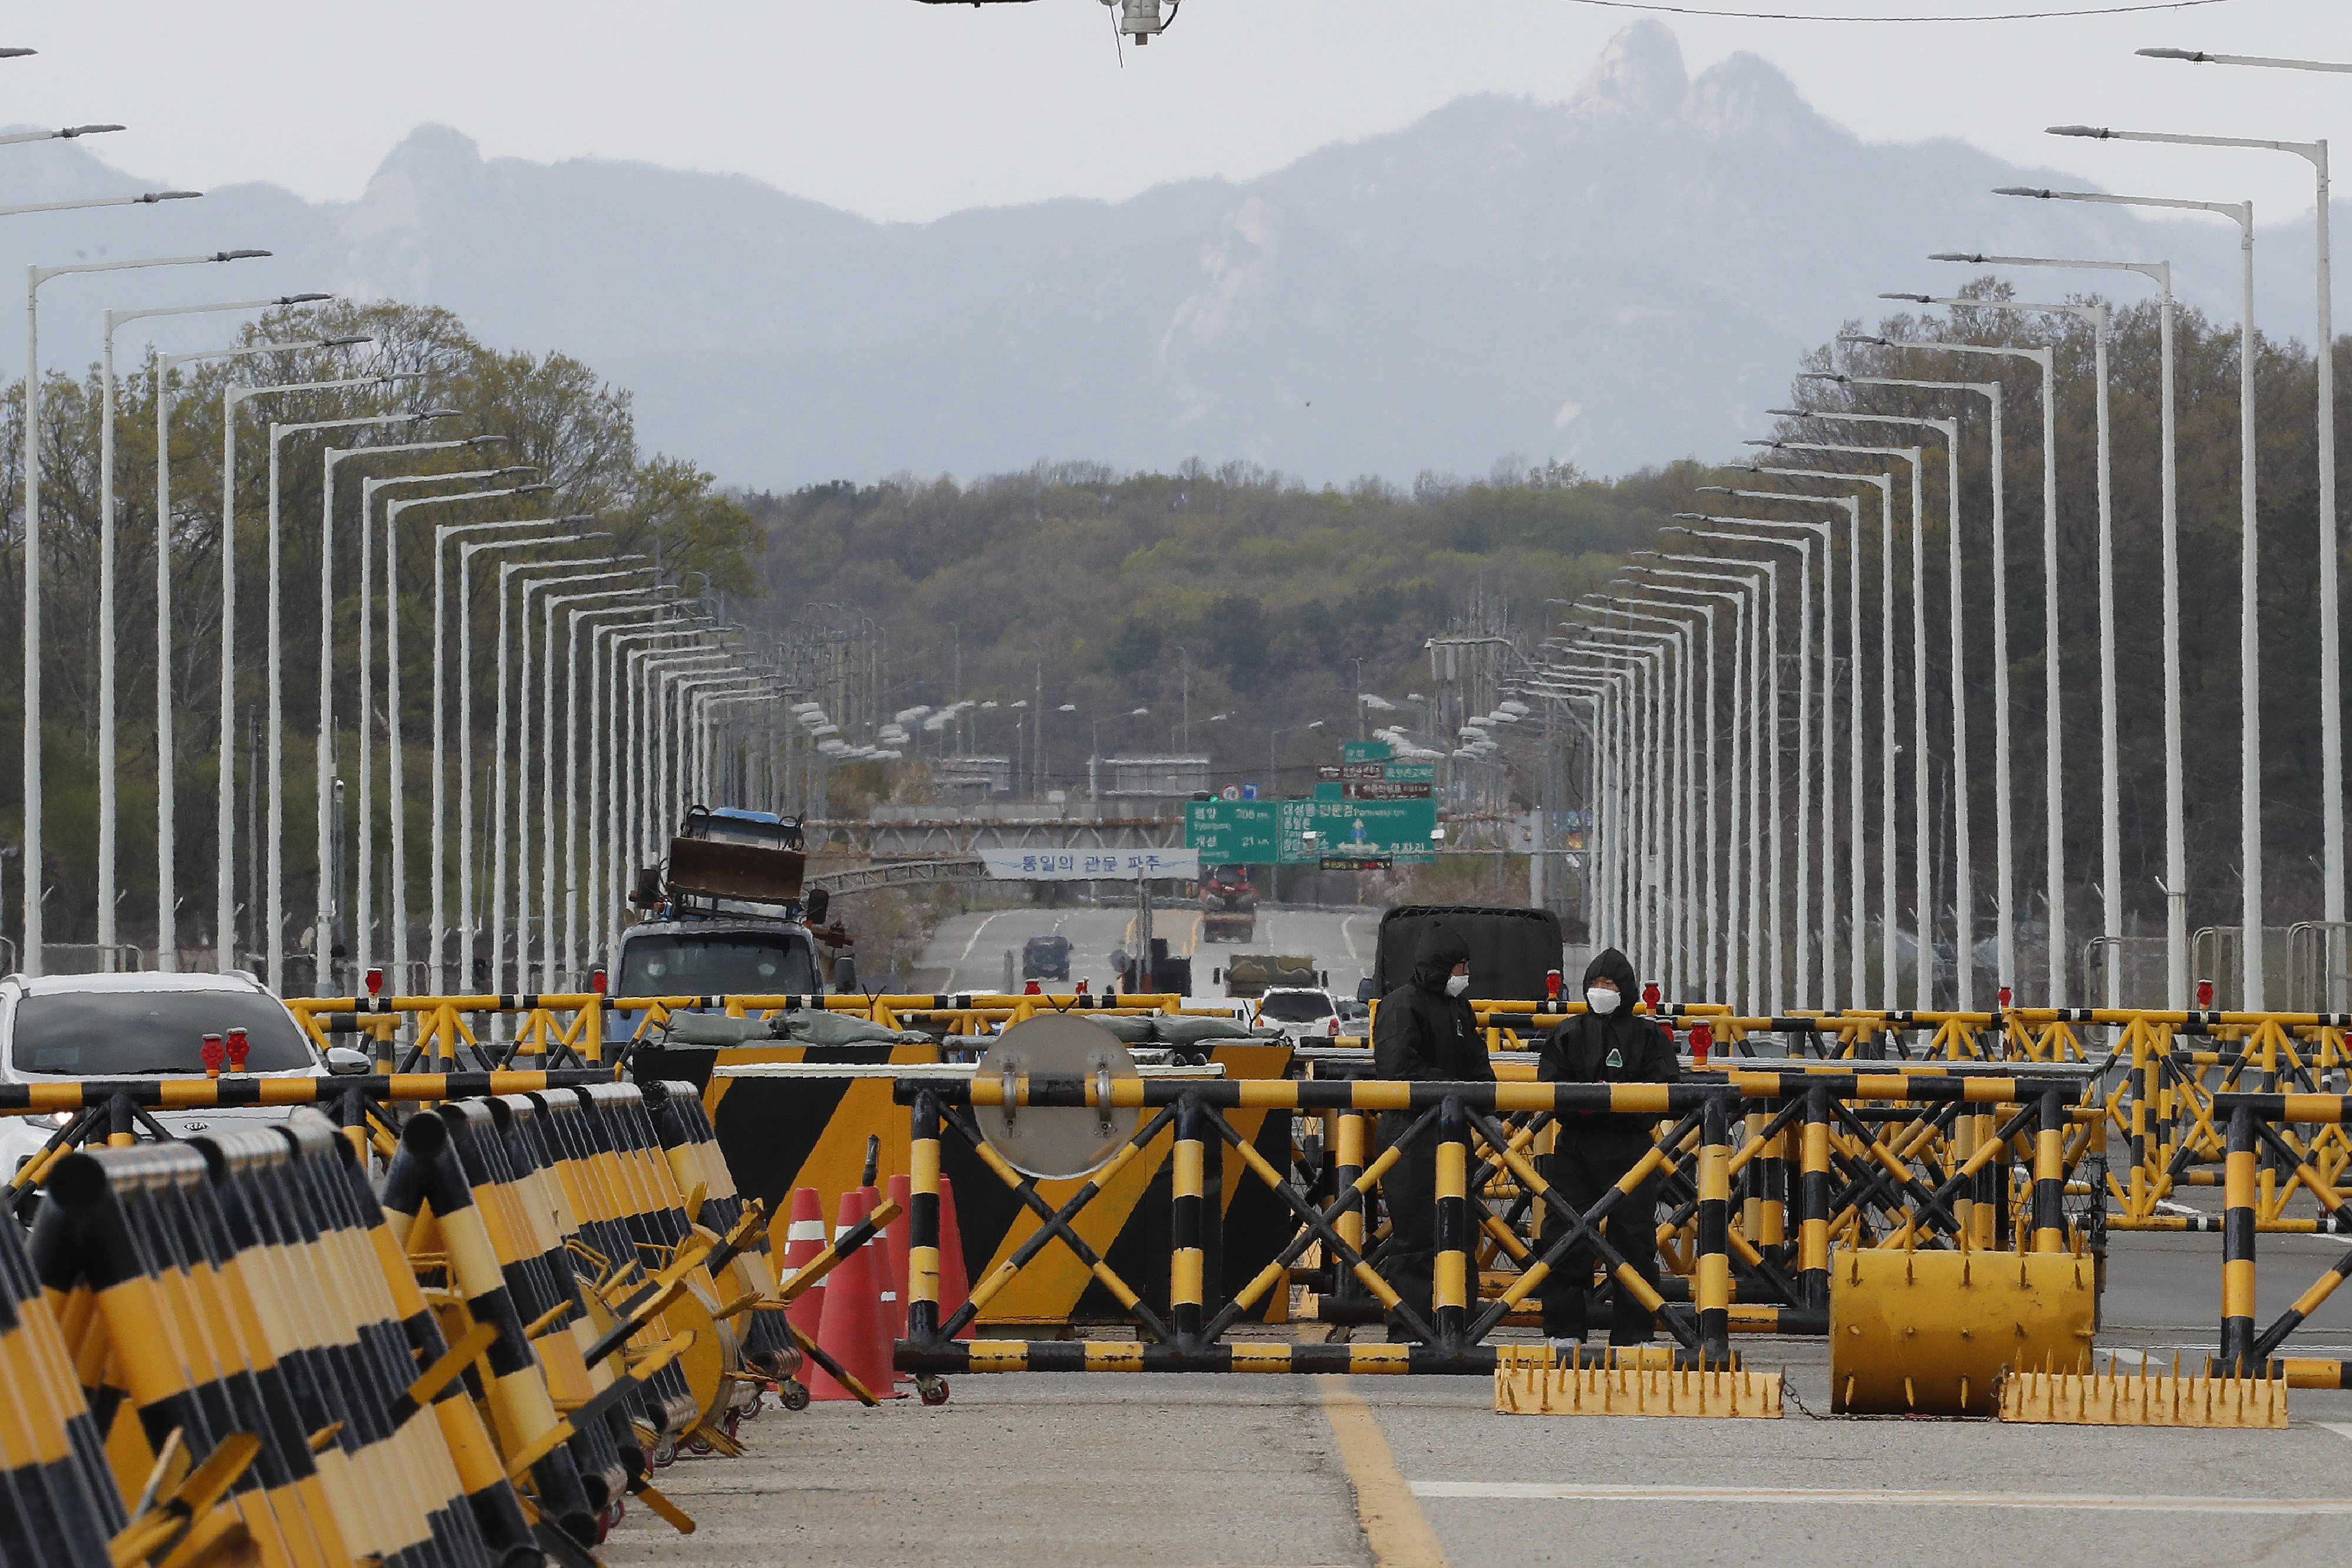 South Korean army soldiers wearing protective suits stand guard at the Unification Bridge, which leads to the Panmunjom in the Demilitarized Zone in Paju, South Korea